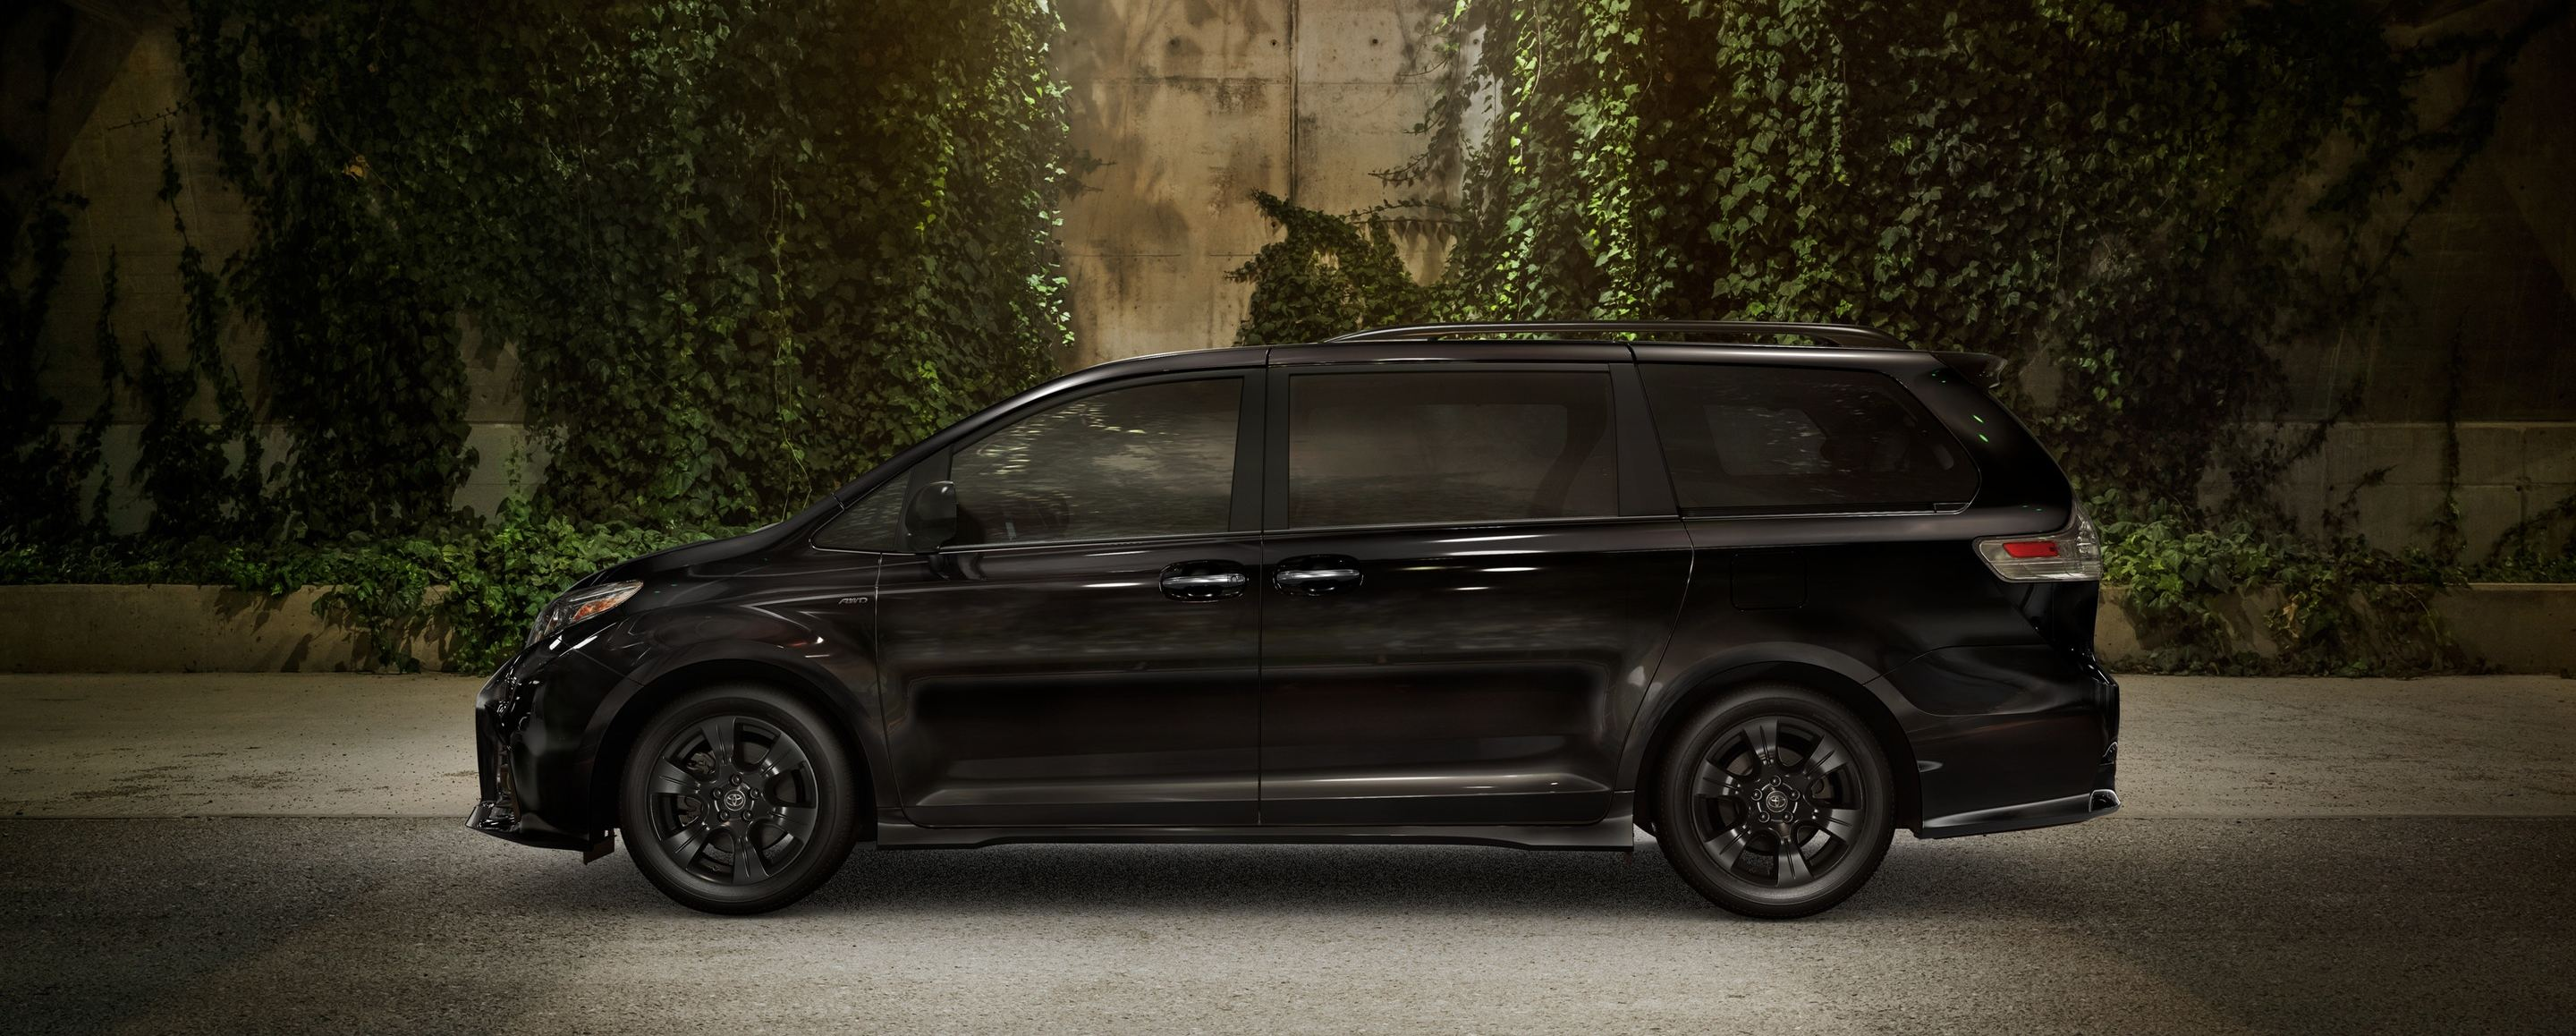 2020 Toyota Sienna Financing near Oak Brook, IL